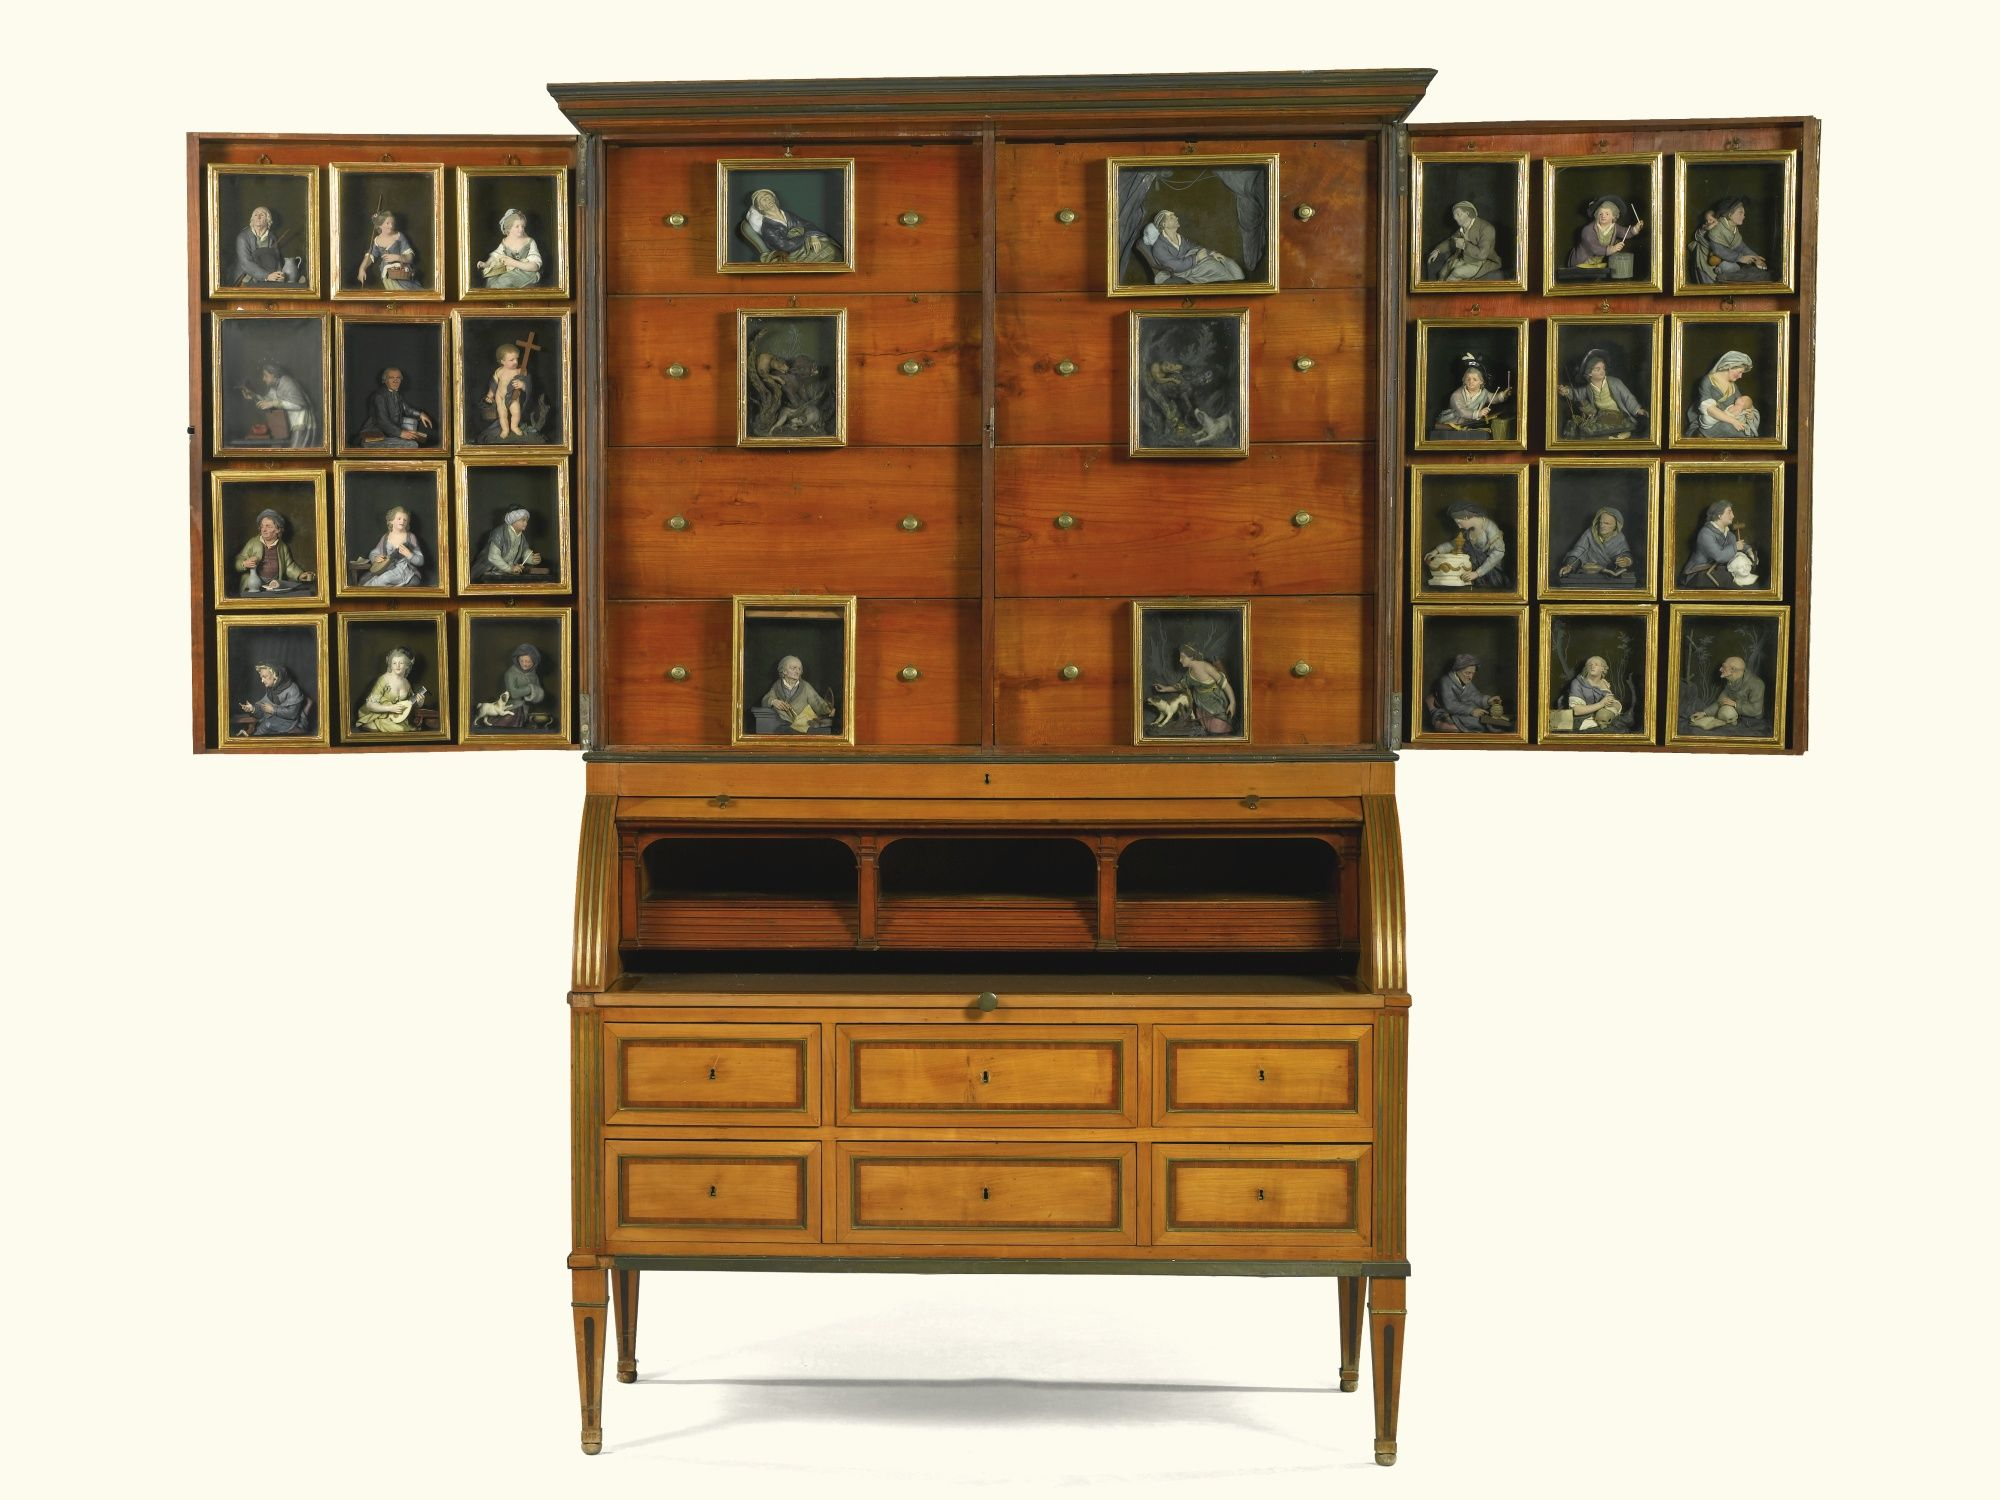 A German Neoclassical Brass Mounted Cherrywood Bureau Cabinet Figuri Schrank Late 18th Century Neoclassical Furniture Georgian Furniture European Furniture